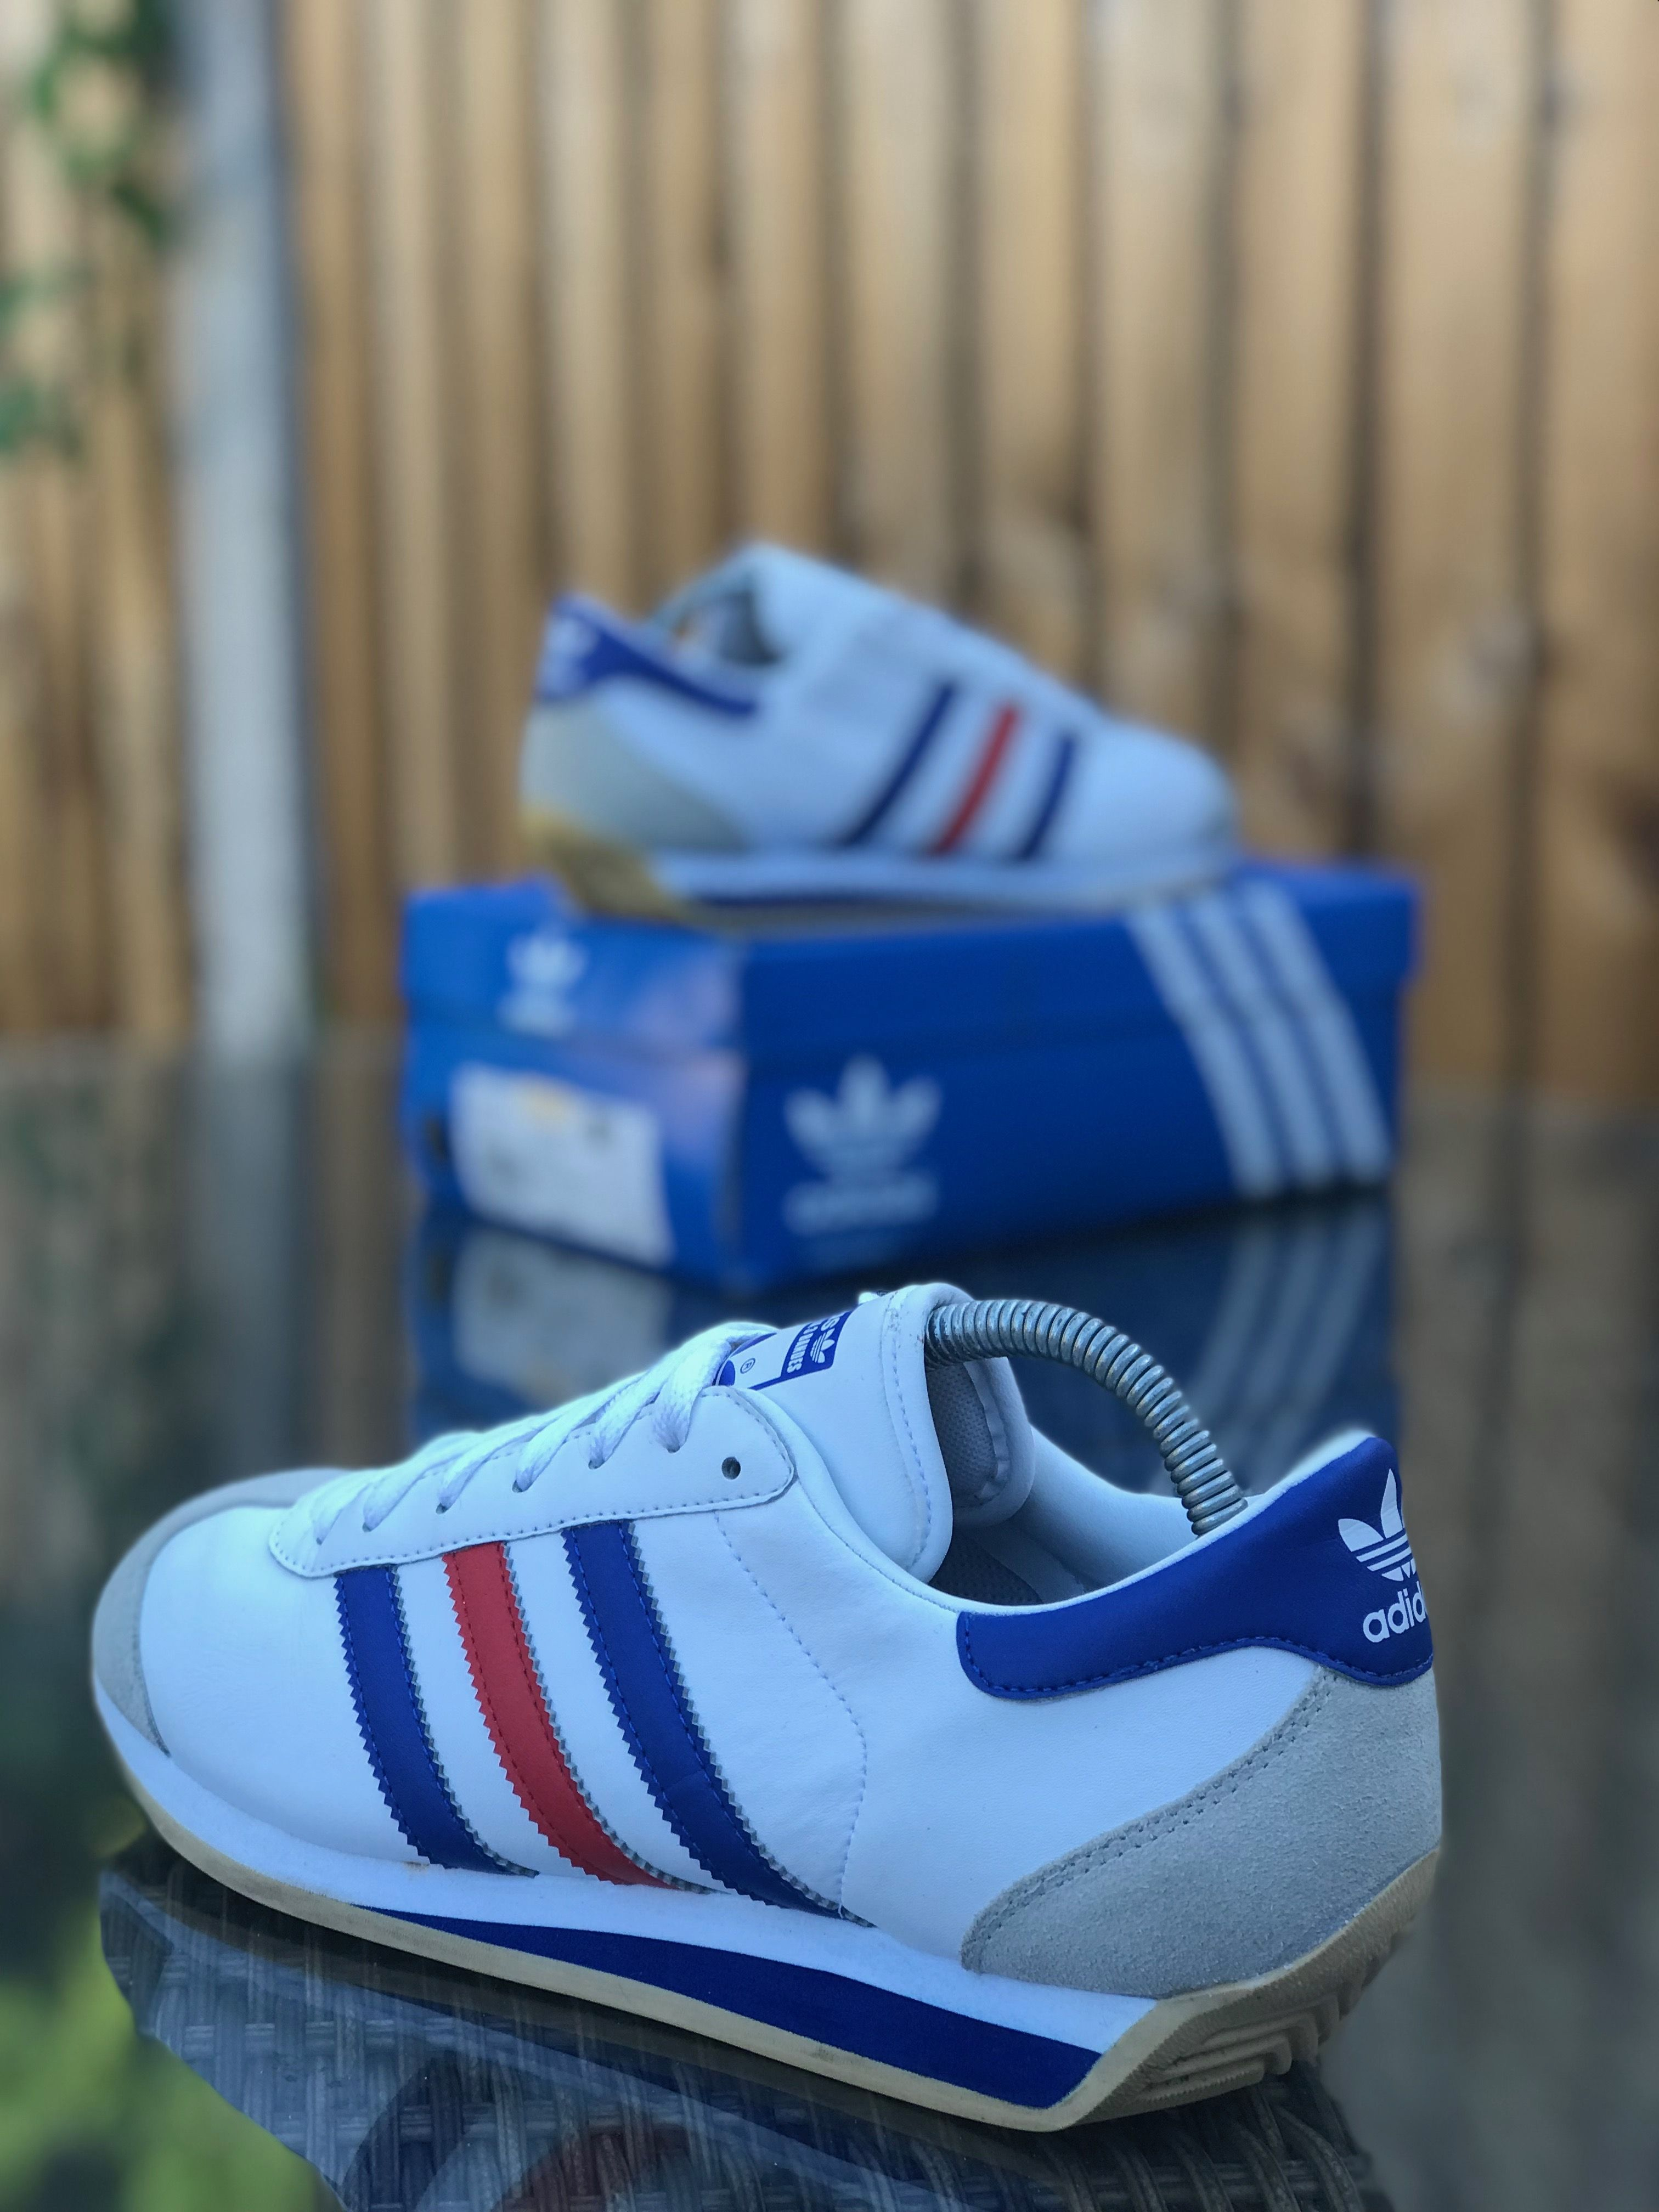 Pin by Chris Tortal on Adidas Originals | Vintage adidas